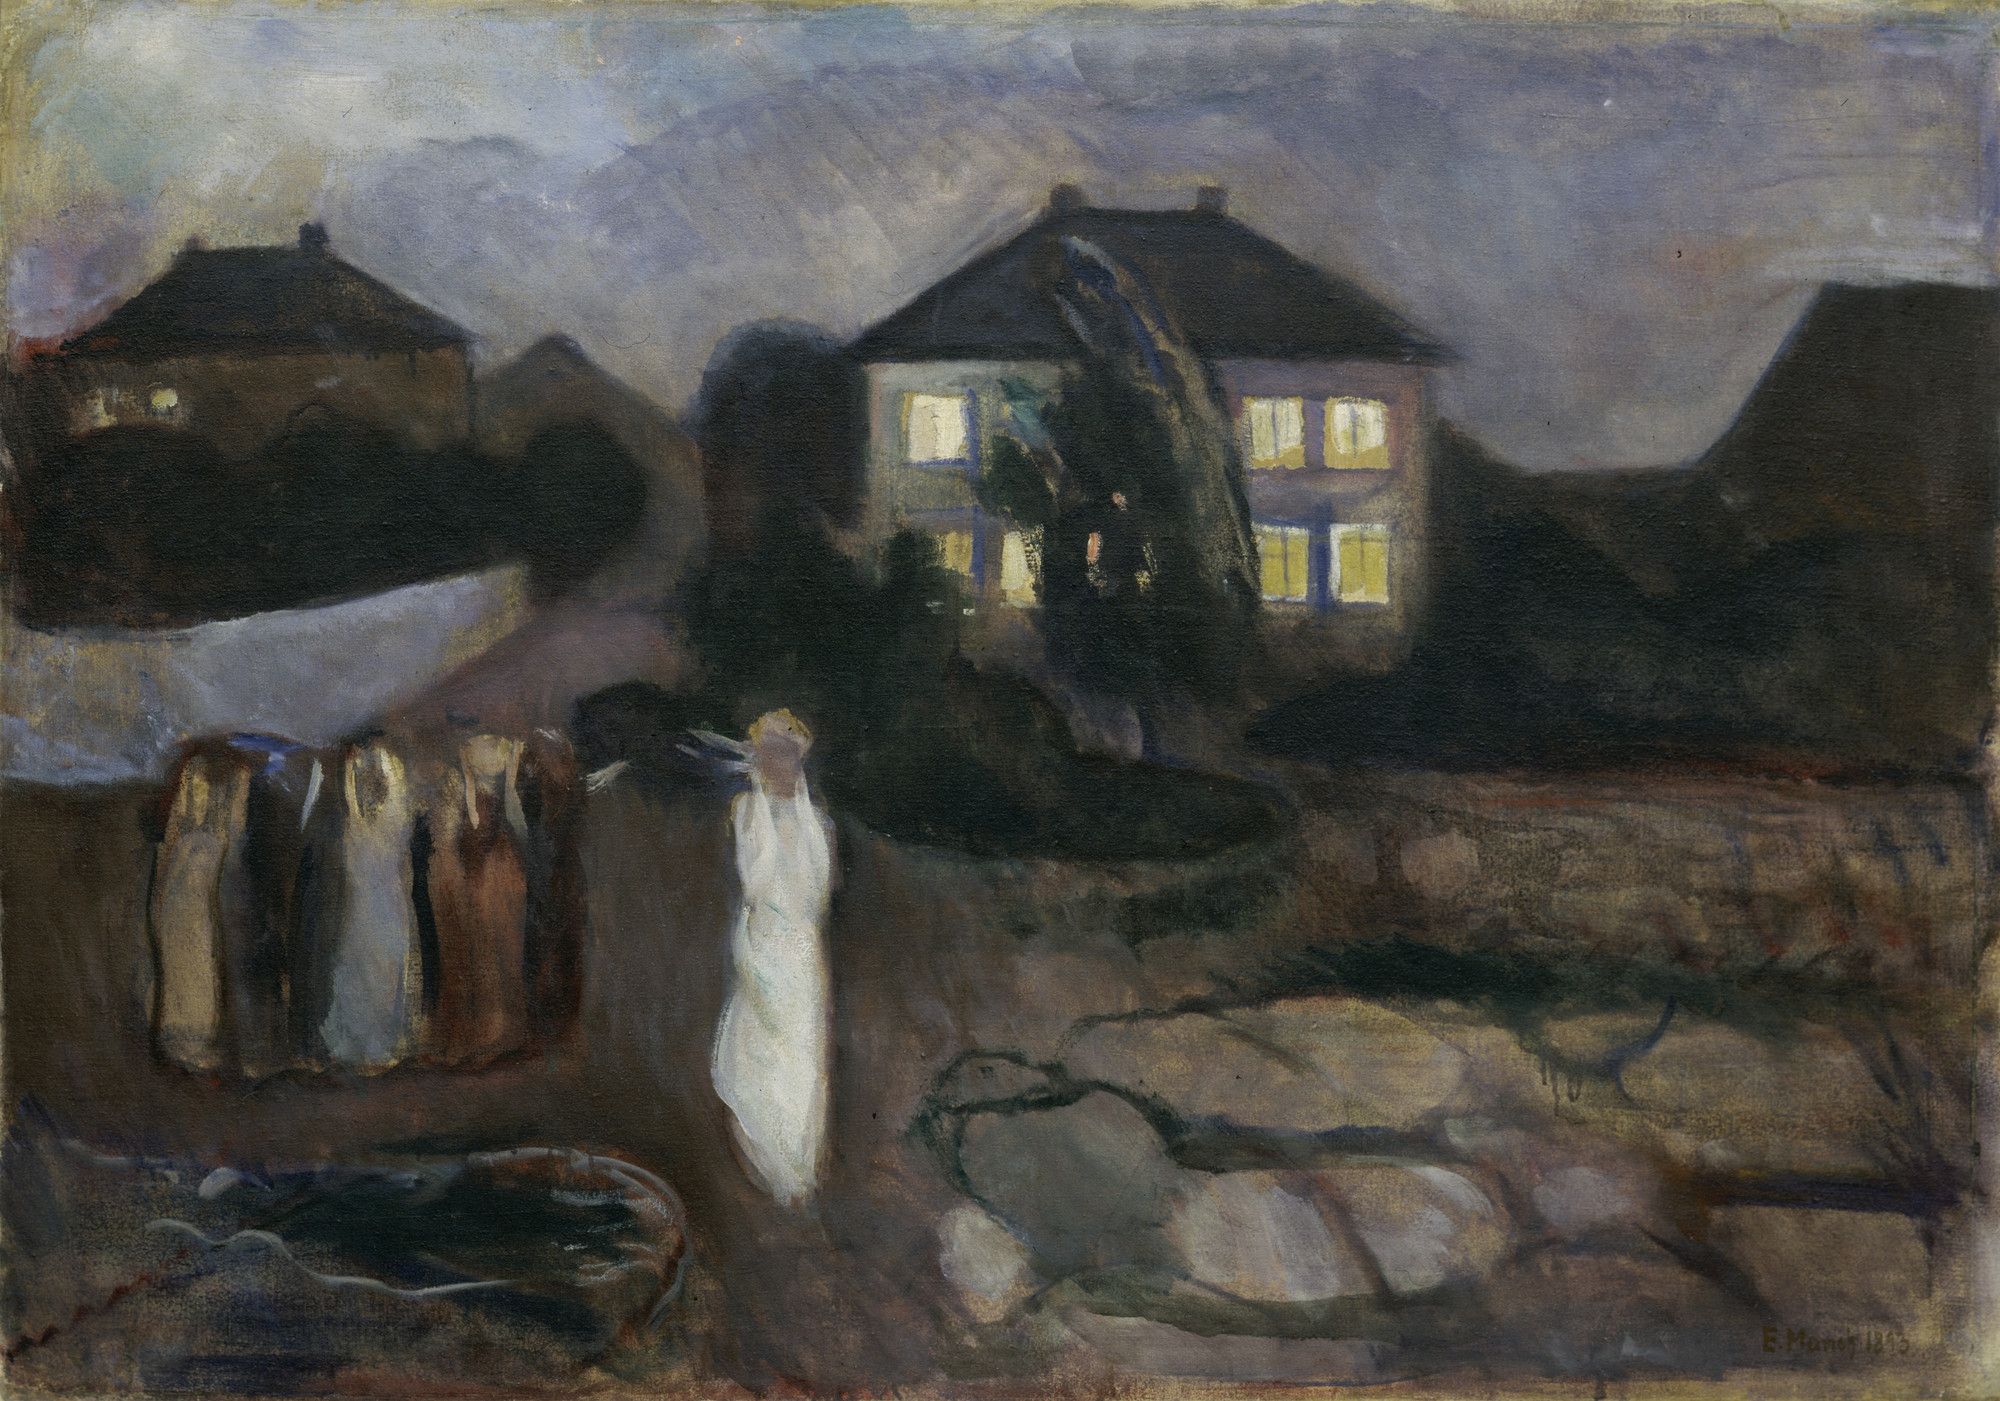 Edvard Munch. The Storm. 1893